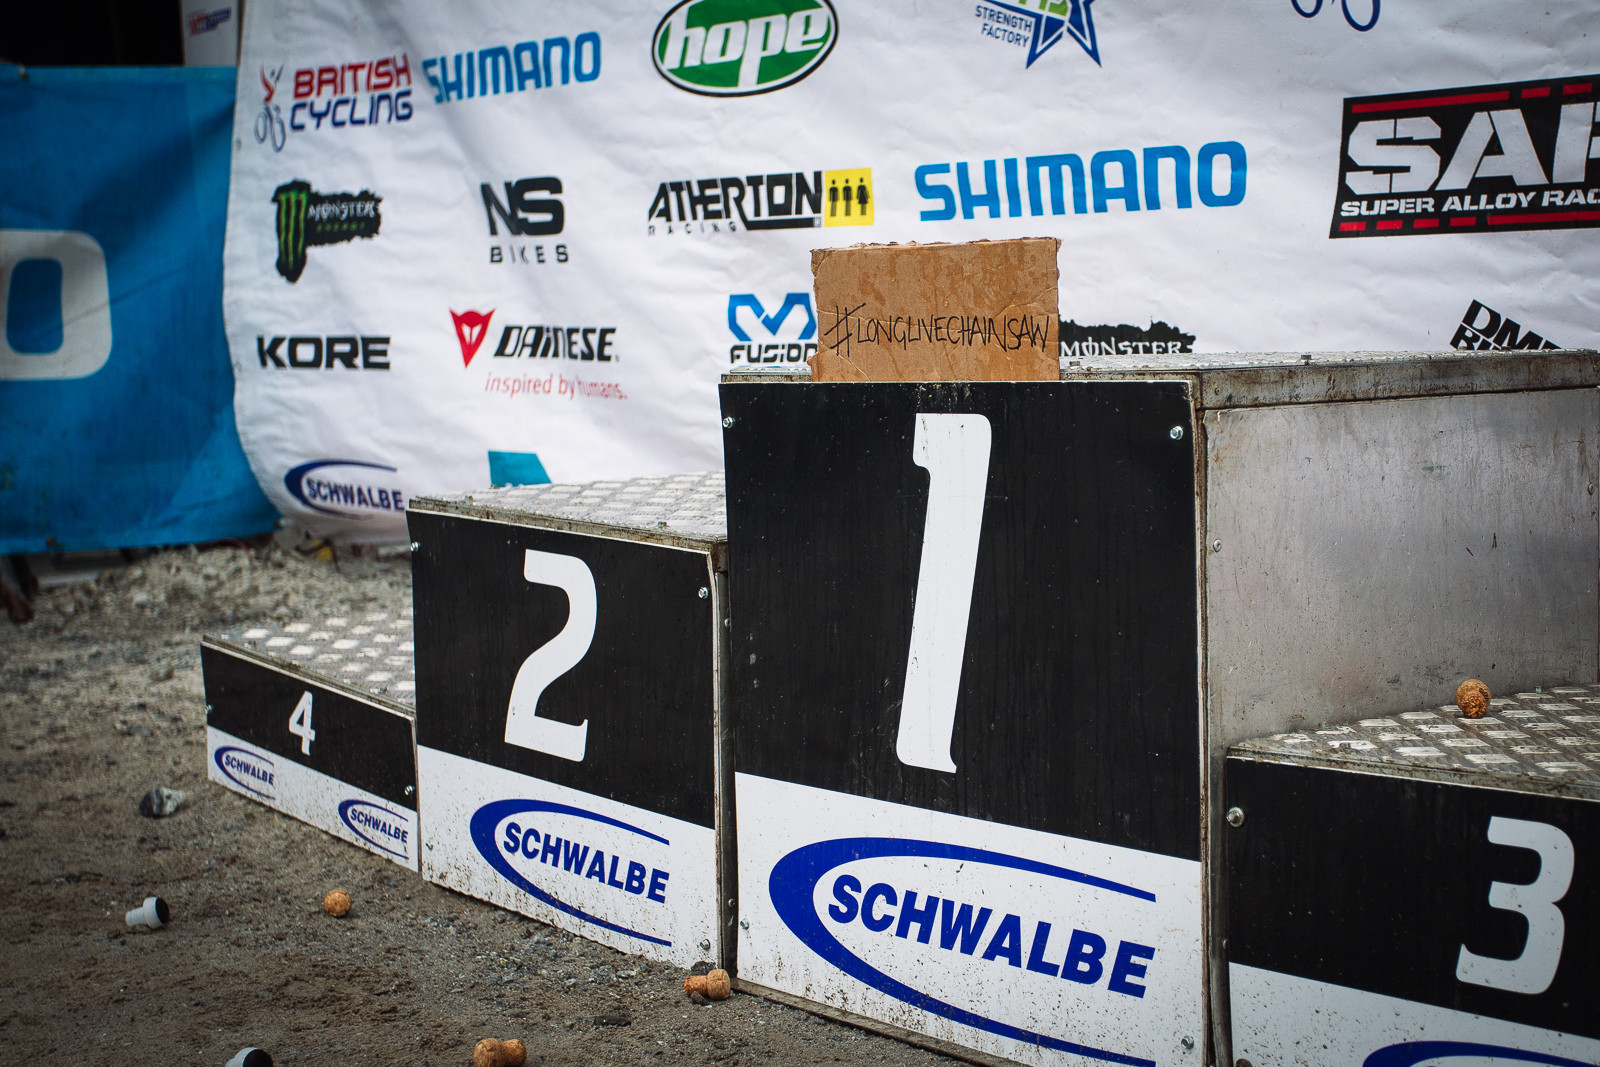 #longlivechainsaw - Fort William DH Action from the British Downhill Series - Mountain Biking Pictures - Vital MTB